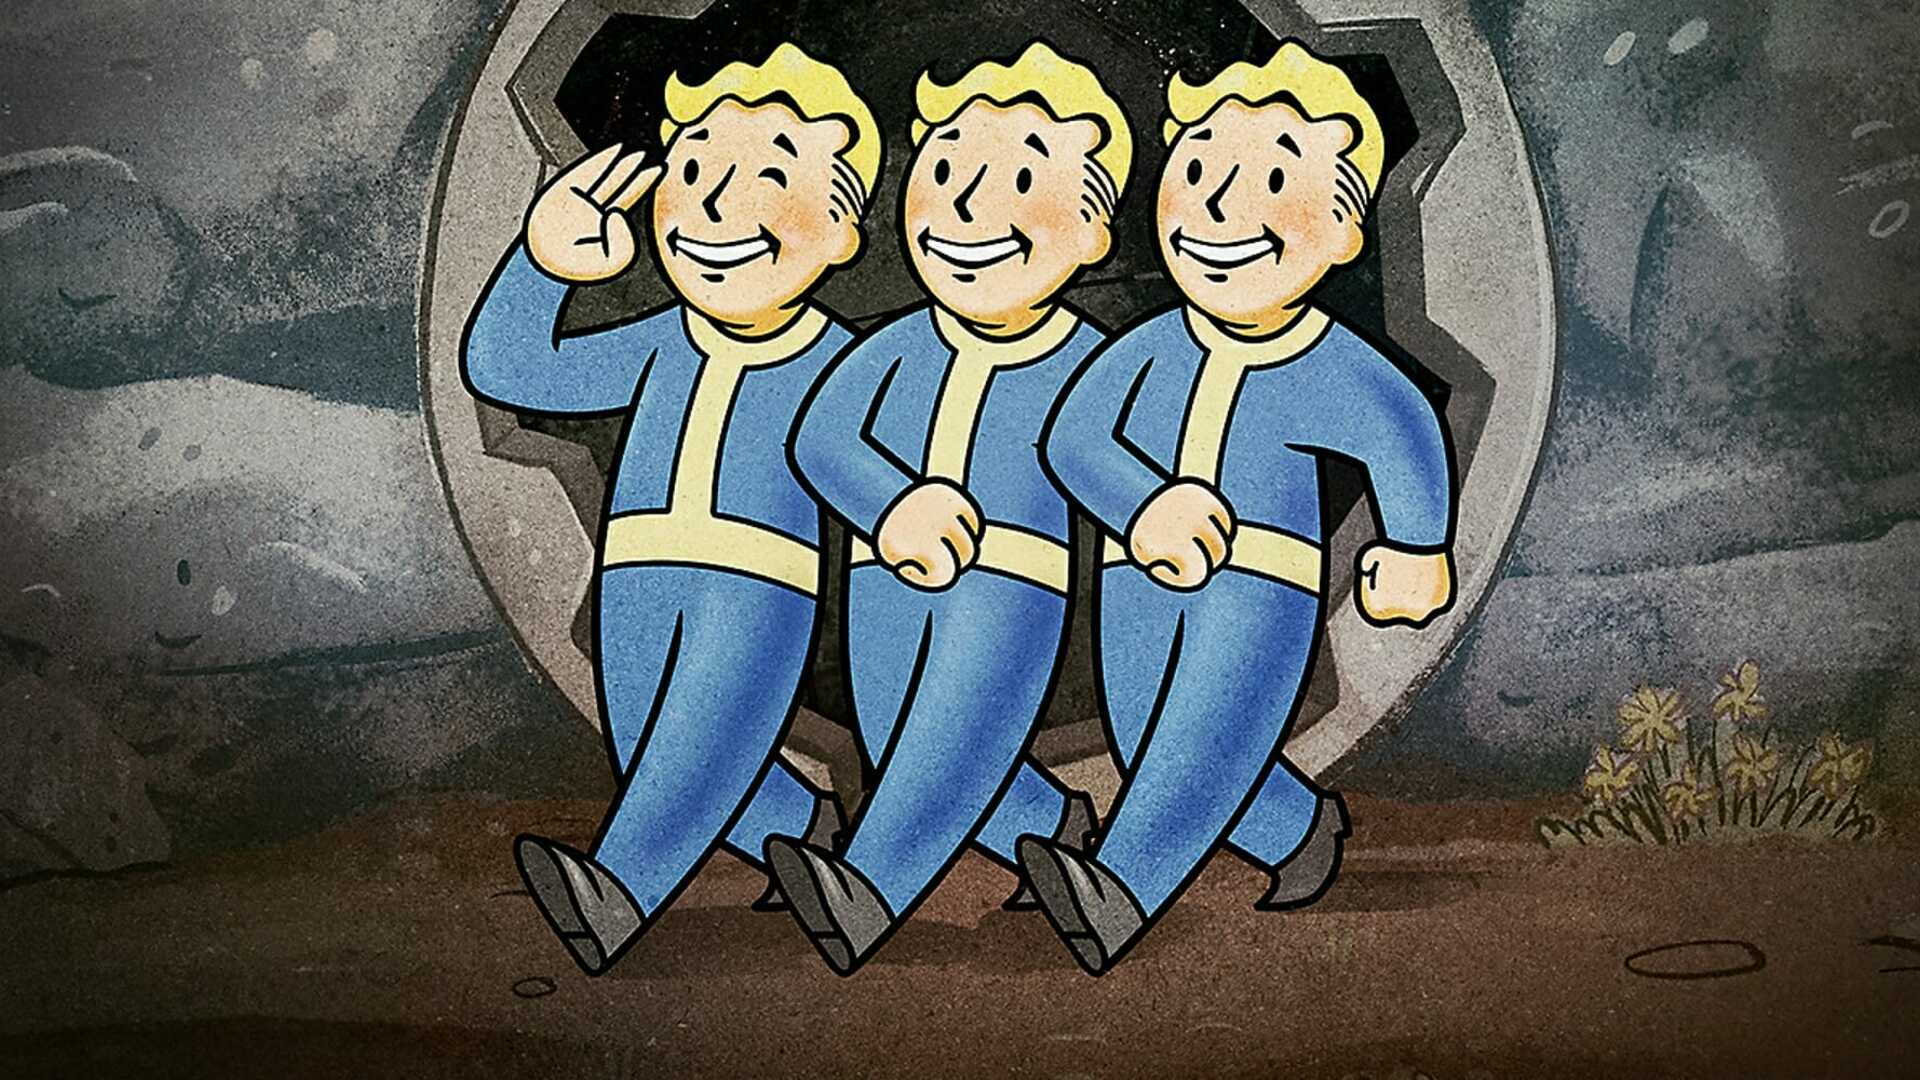 Fallout 76 Finally Scores a Win After Purging Duplicate Weapons